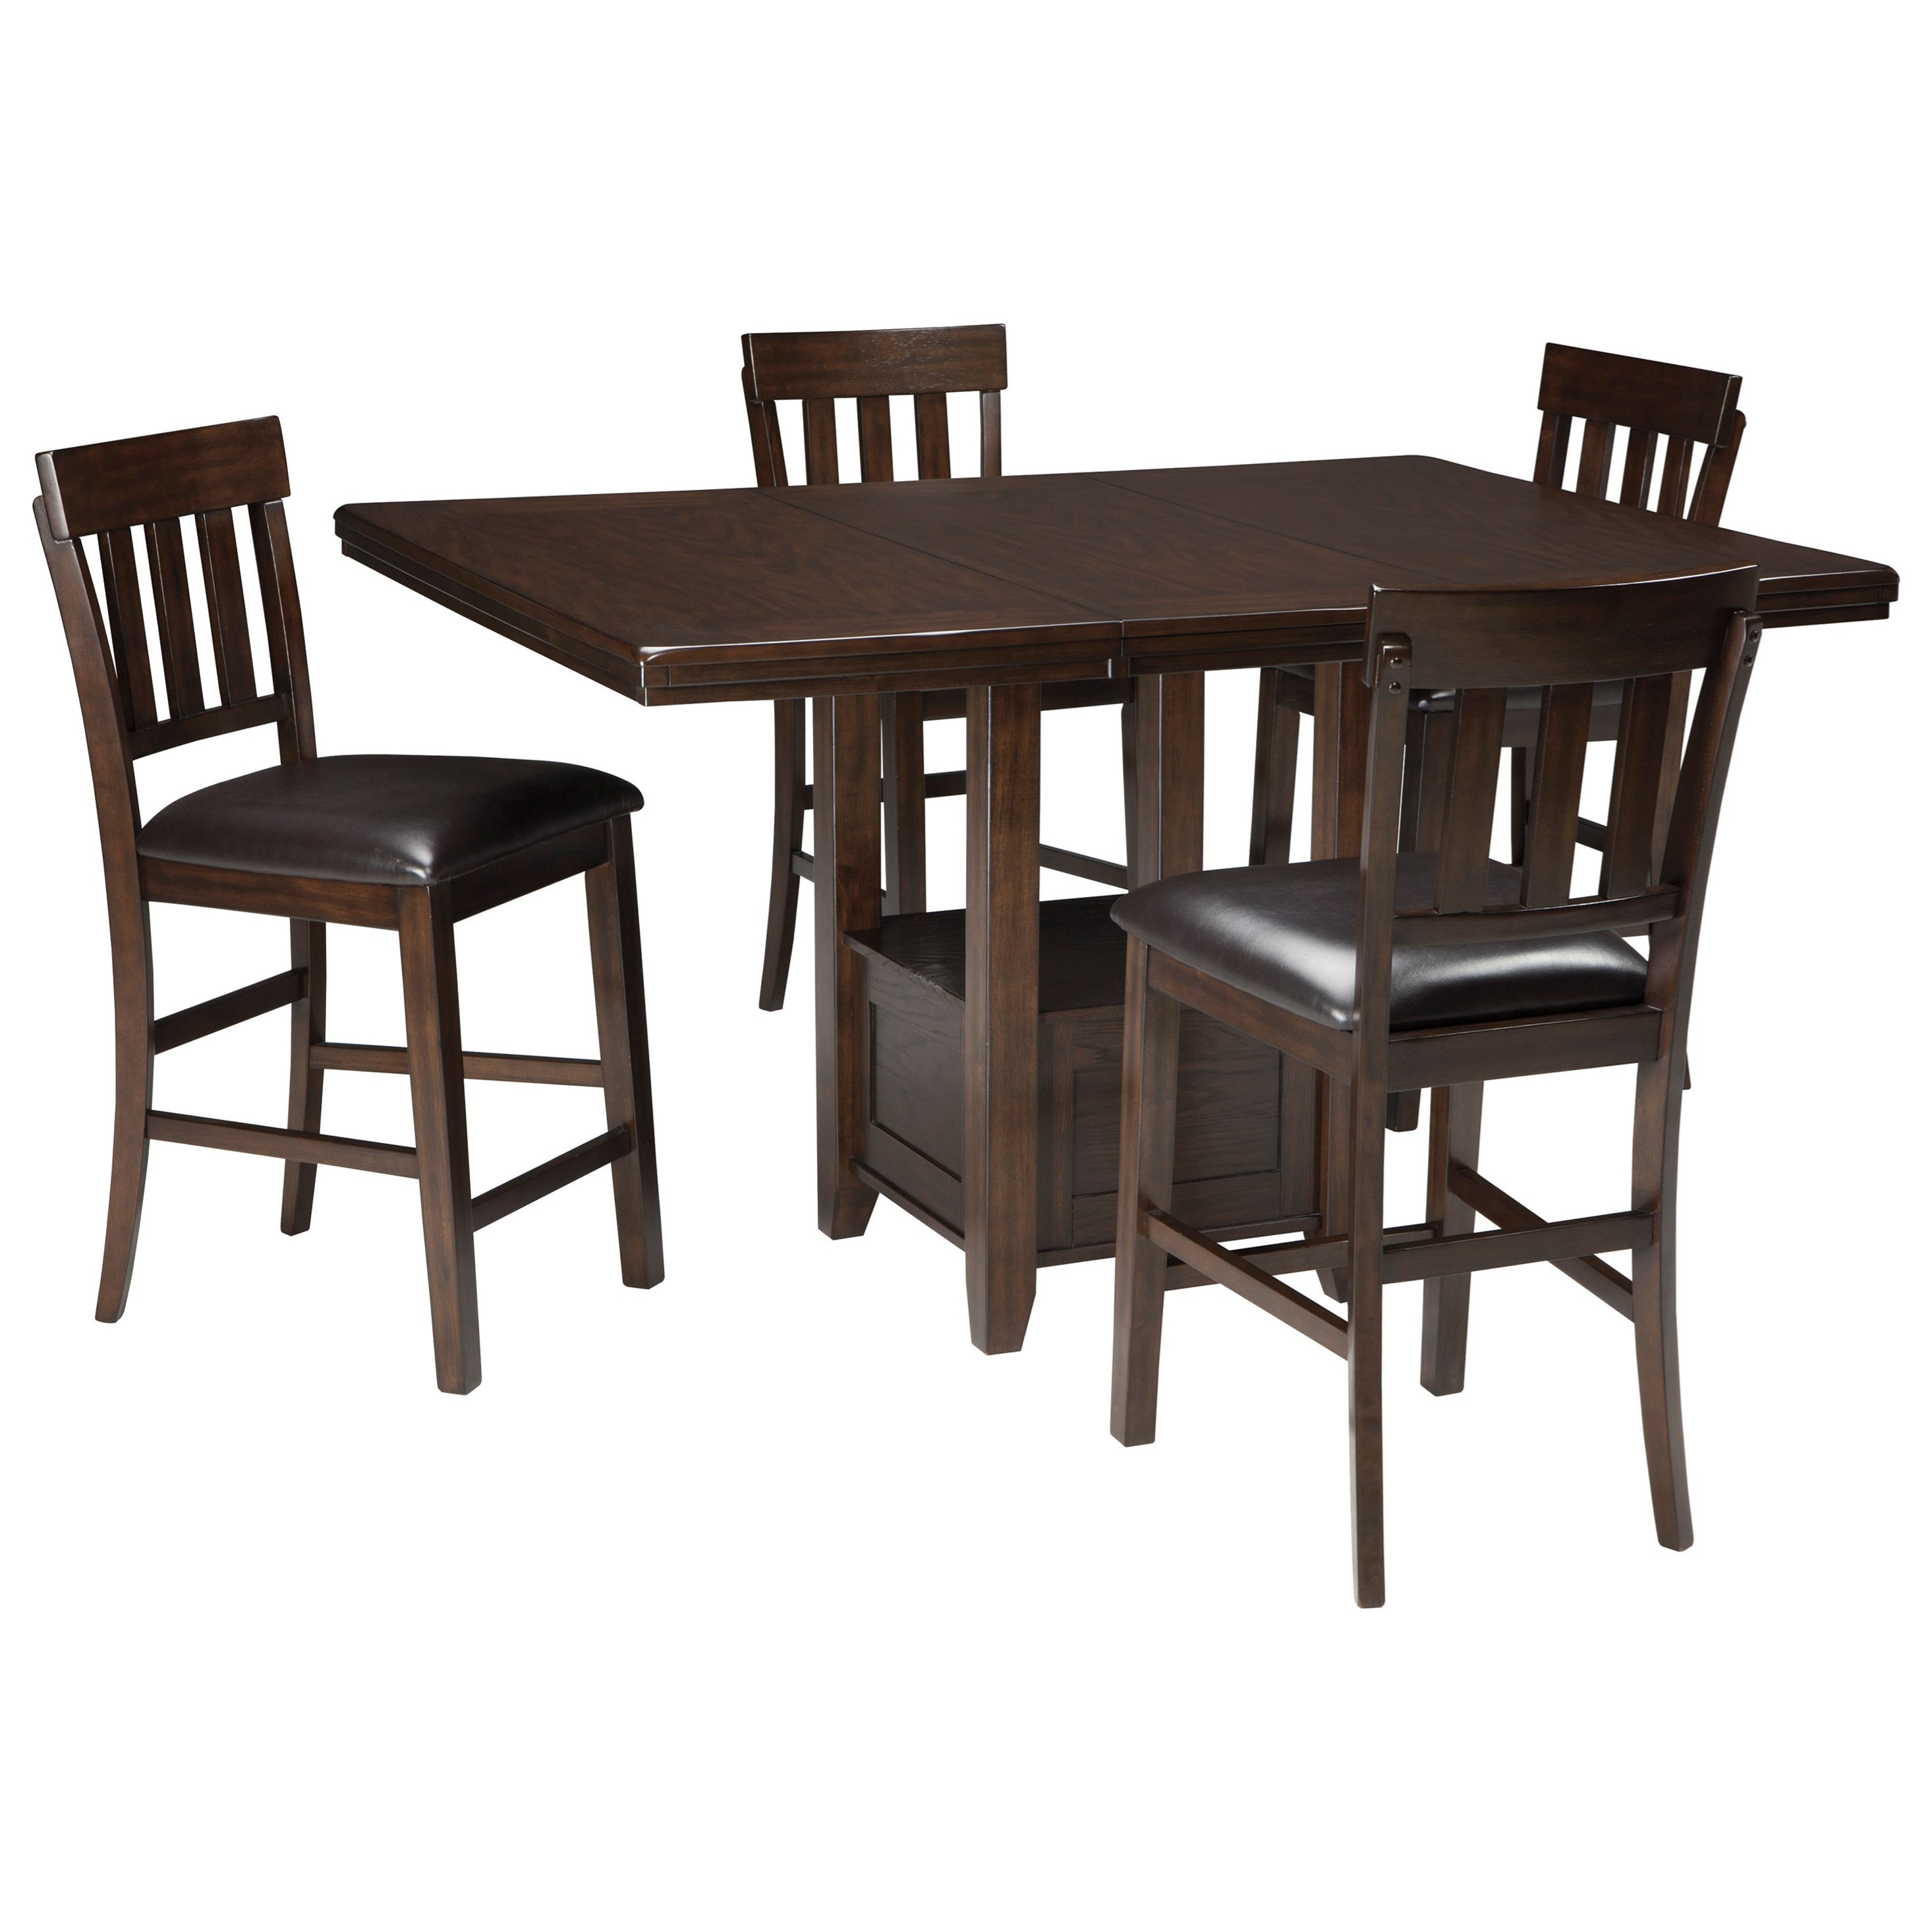 Signature design by ashley haddigan 5 piece dining room for 2 piece dining room set